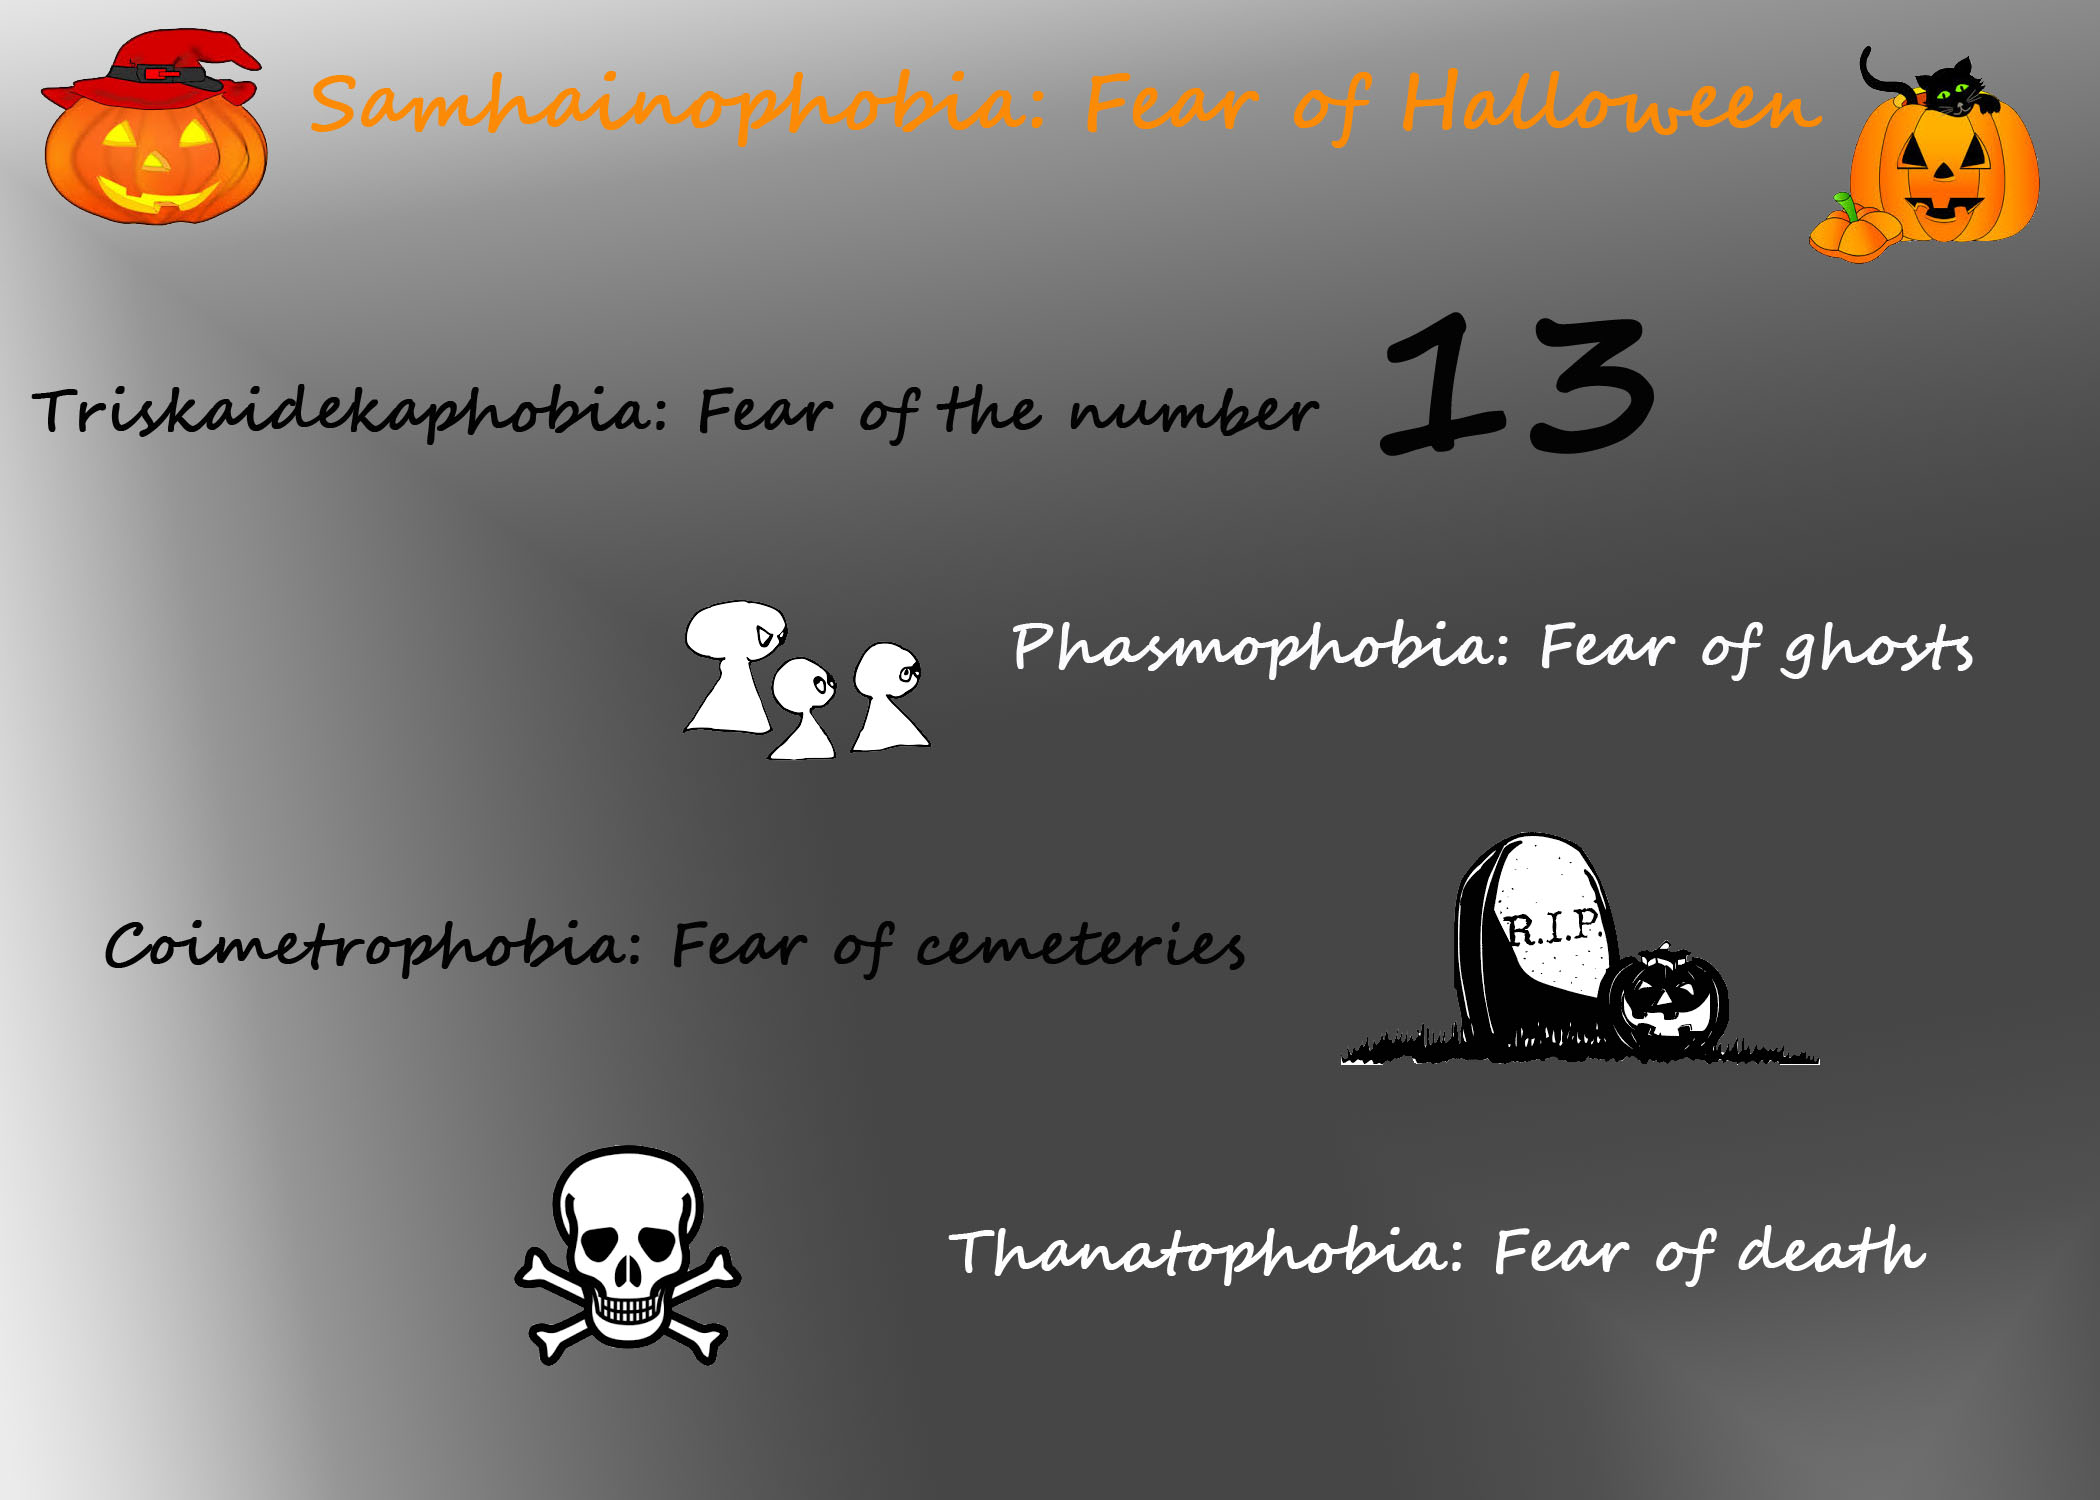 term for fear of halloween | hallowen